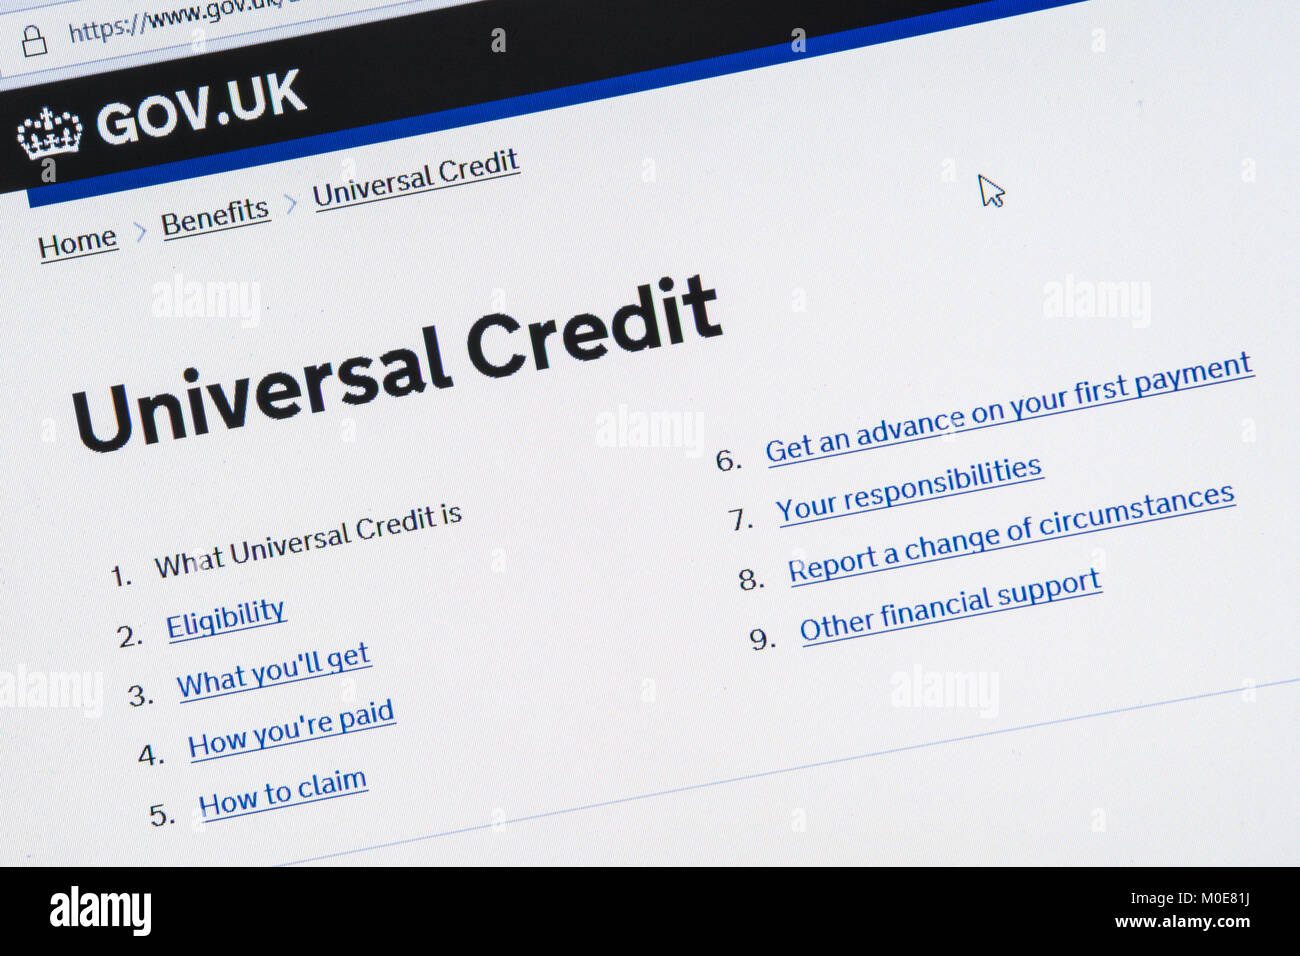 Computer screenshot of information about universal credit on gov.uk website in 2018 Stock Photo